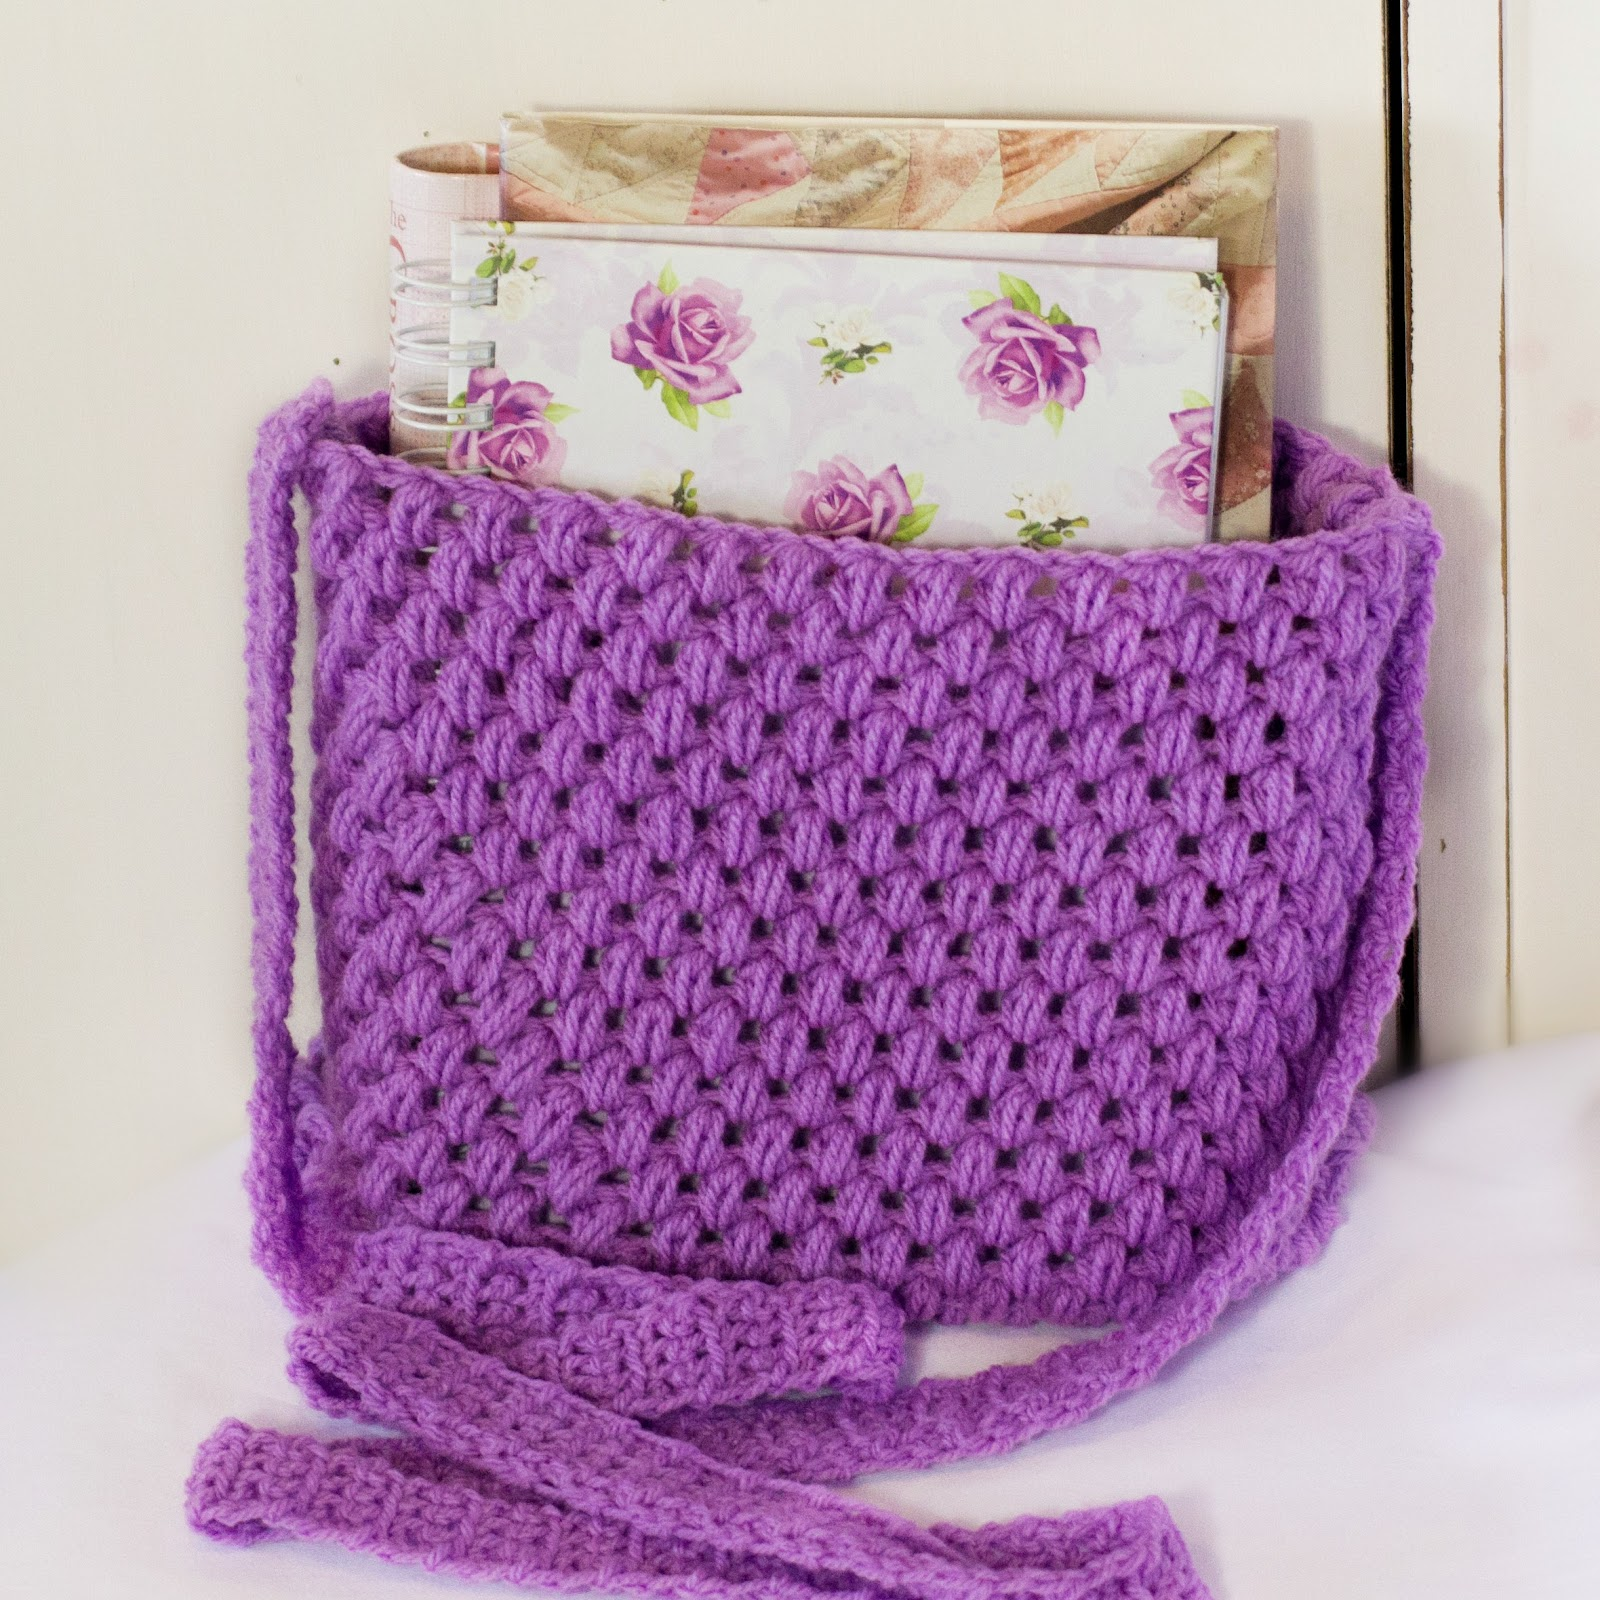 Crochet Simple Bag : ... Craft, Crochet, Create: Out and About ~ Easy Tote Bag Crochet Pattern